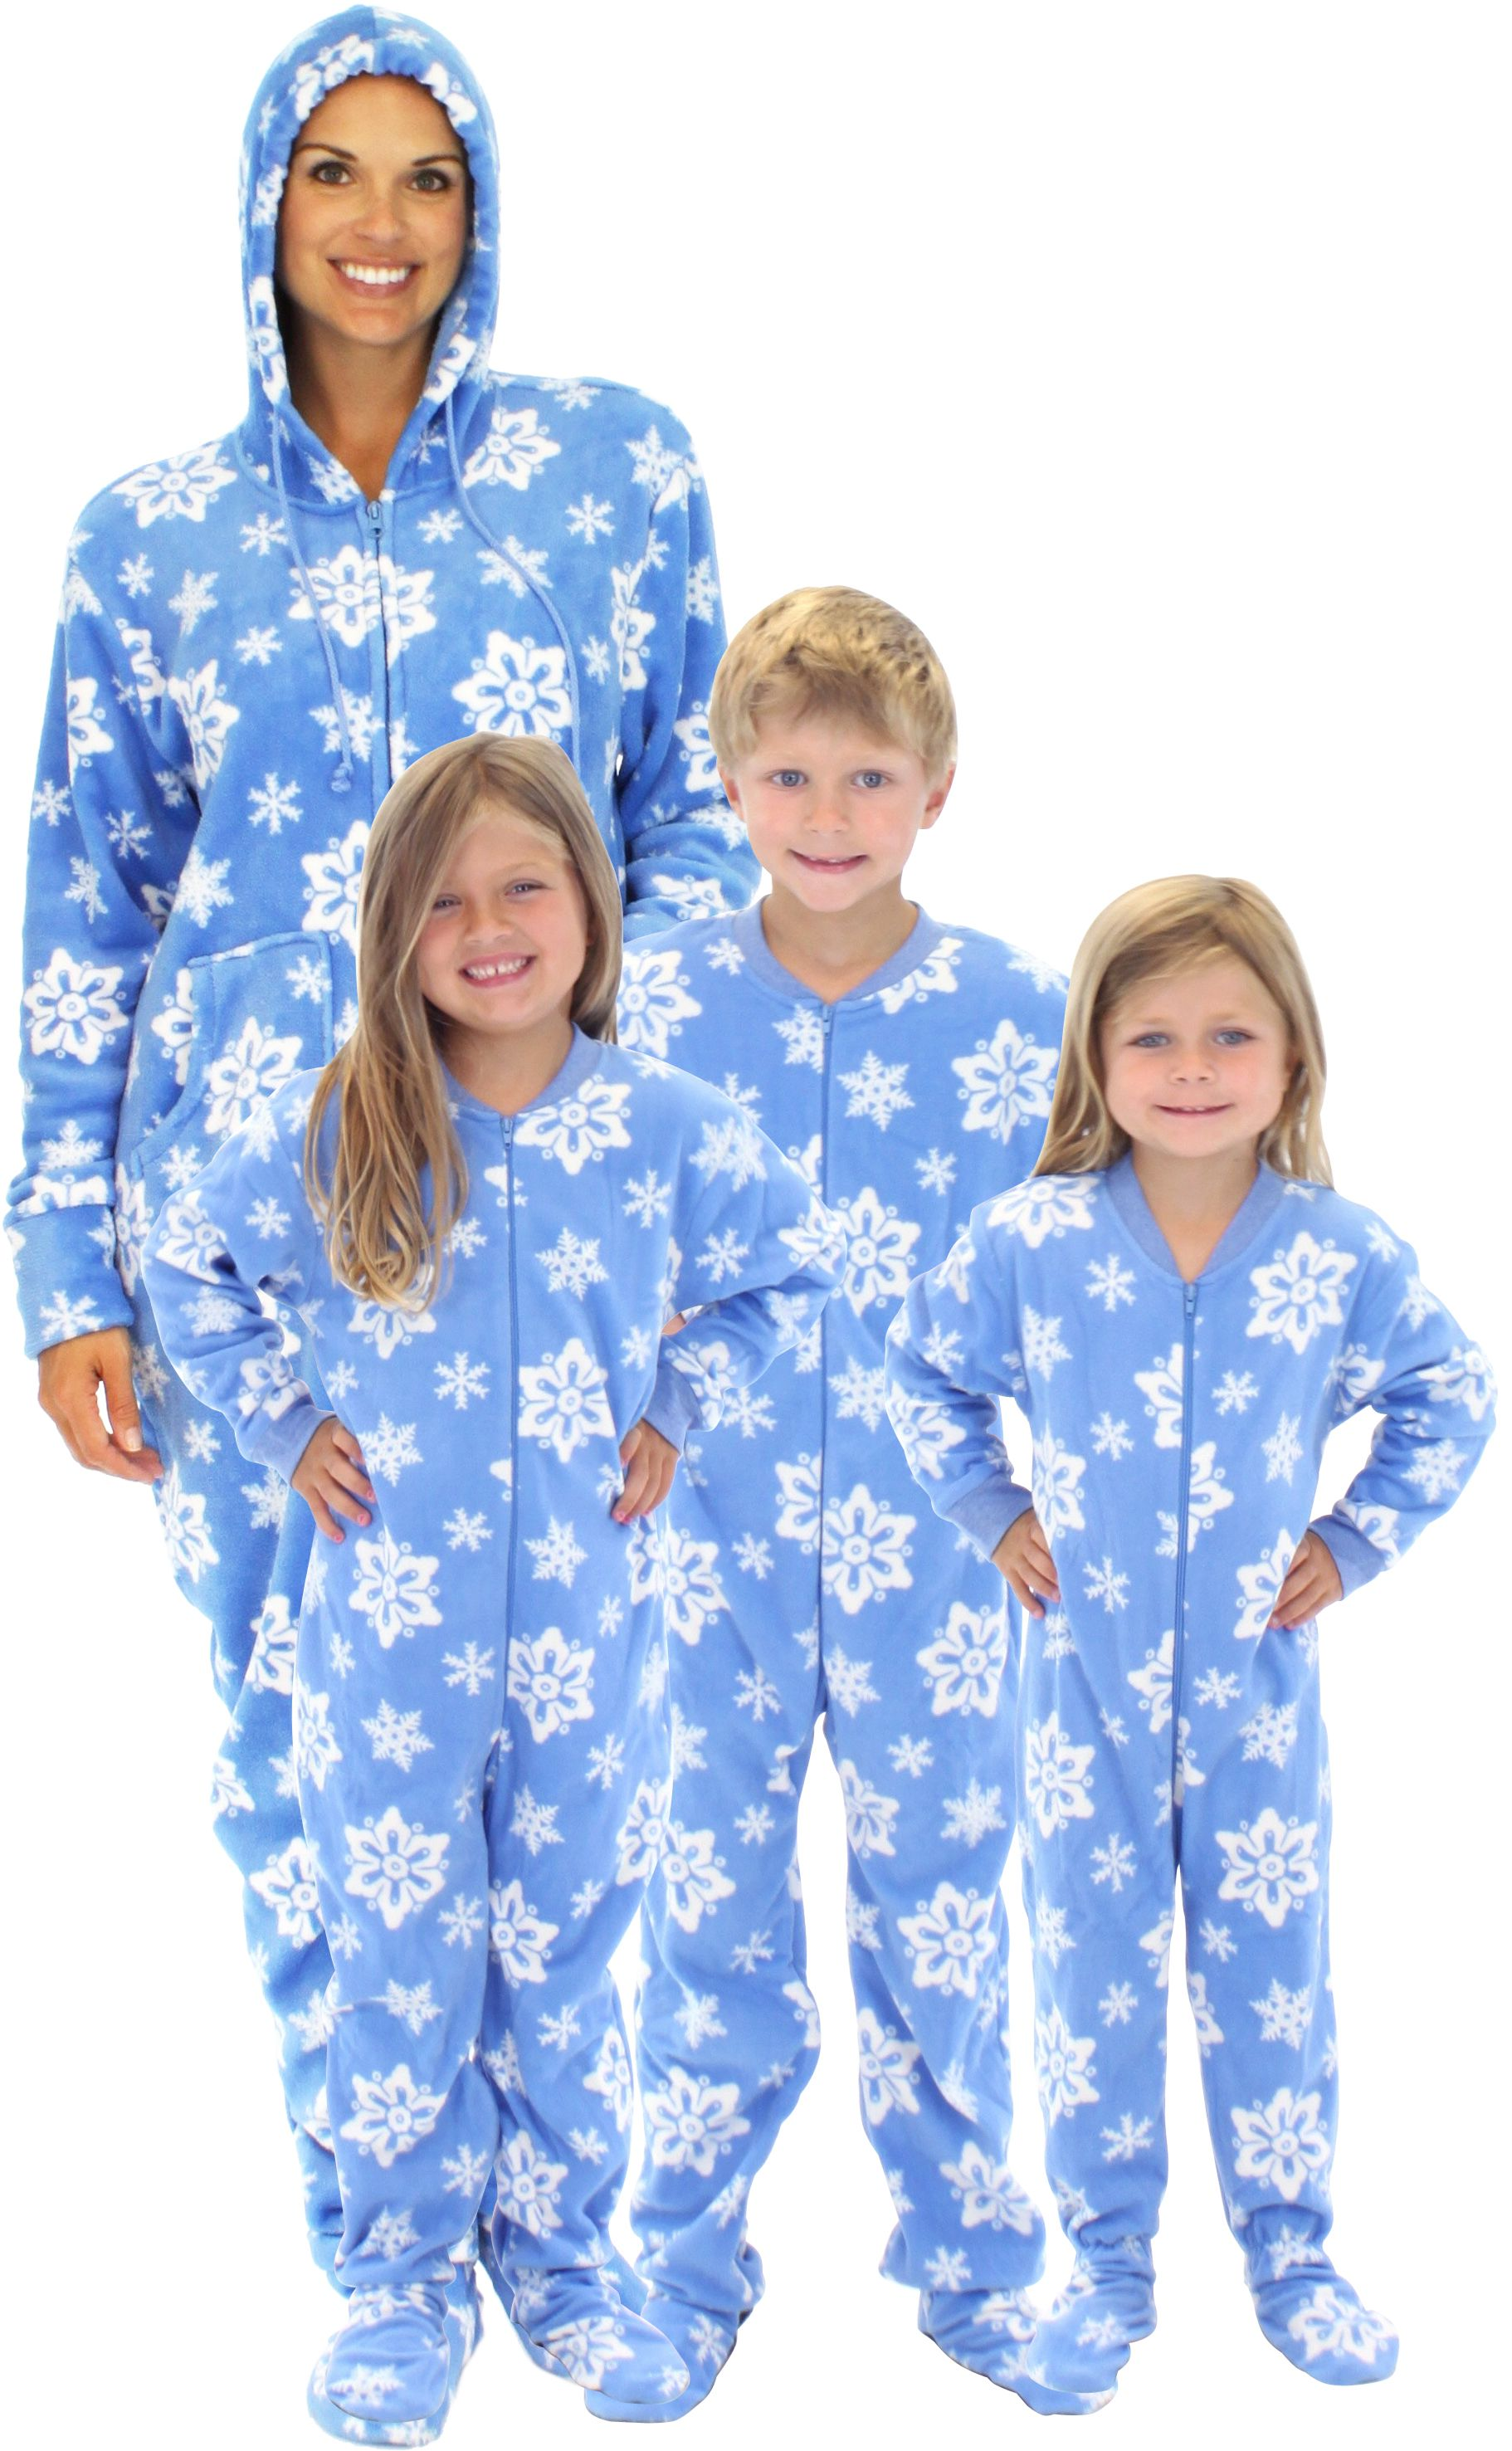 60c2644ca804 Matching Family Pajamas - A Holiday Tradition and Hot Christmas ...